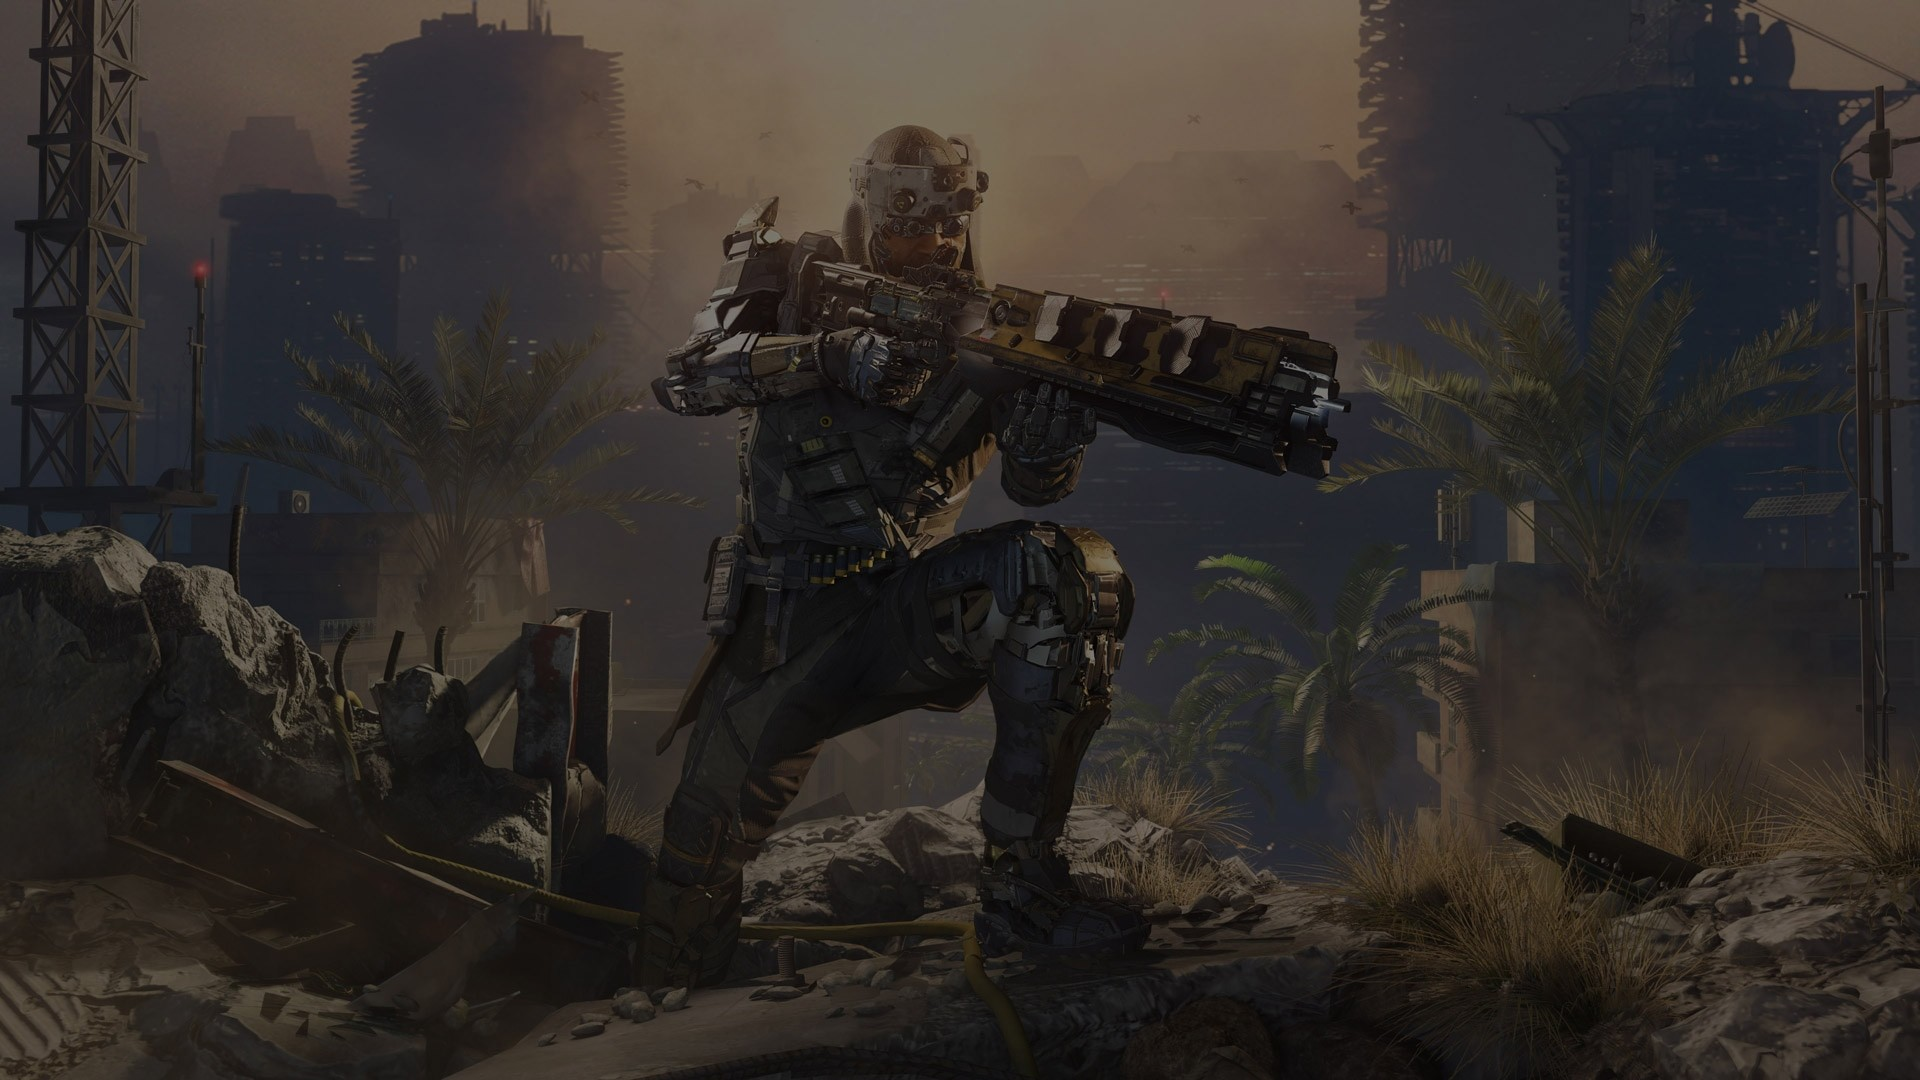 New hi-res images for the (8) known Black Ops 3 Specialist found   Charlie  INTEL